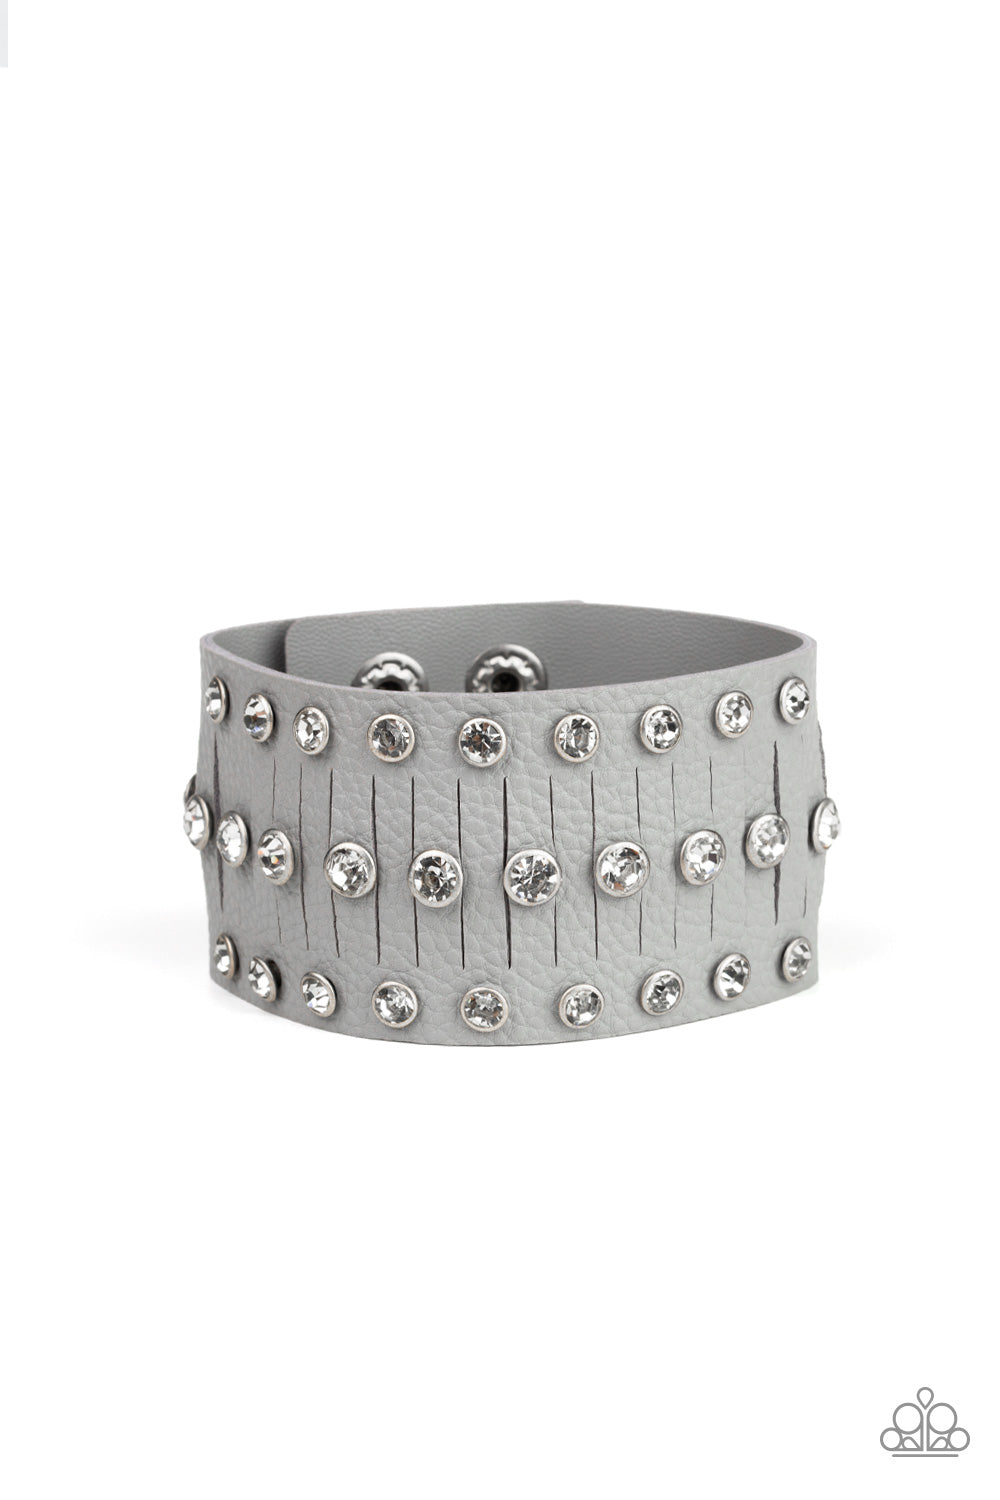 Paparazzi Bracelet-Now Taking the Stage-Silver